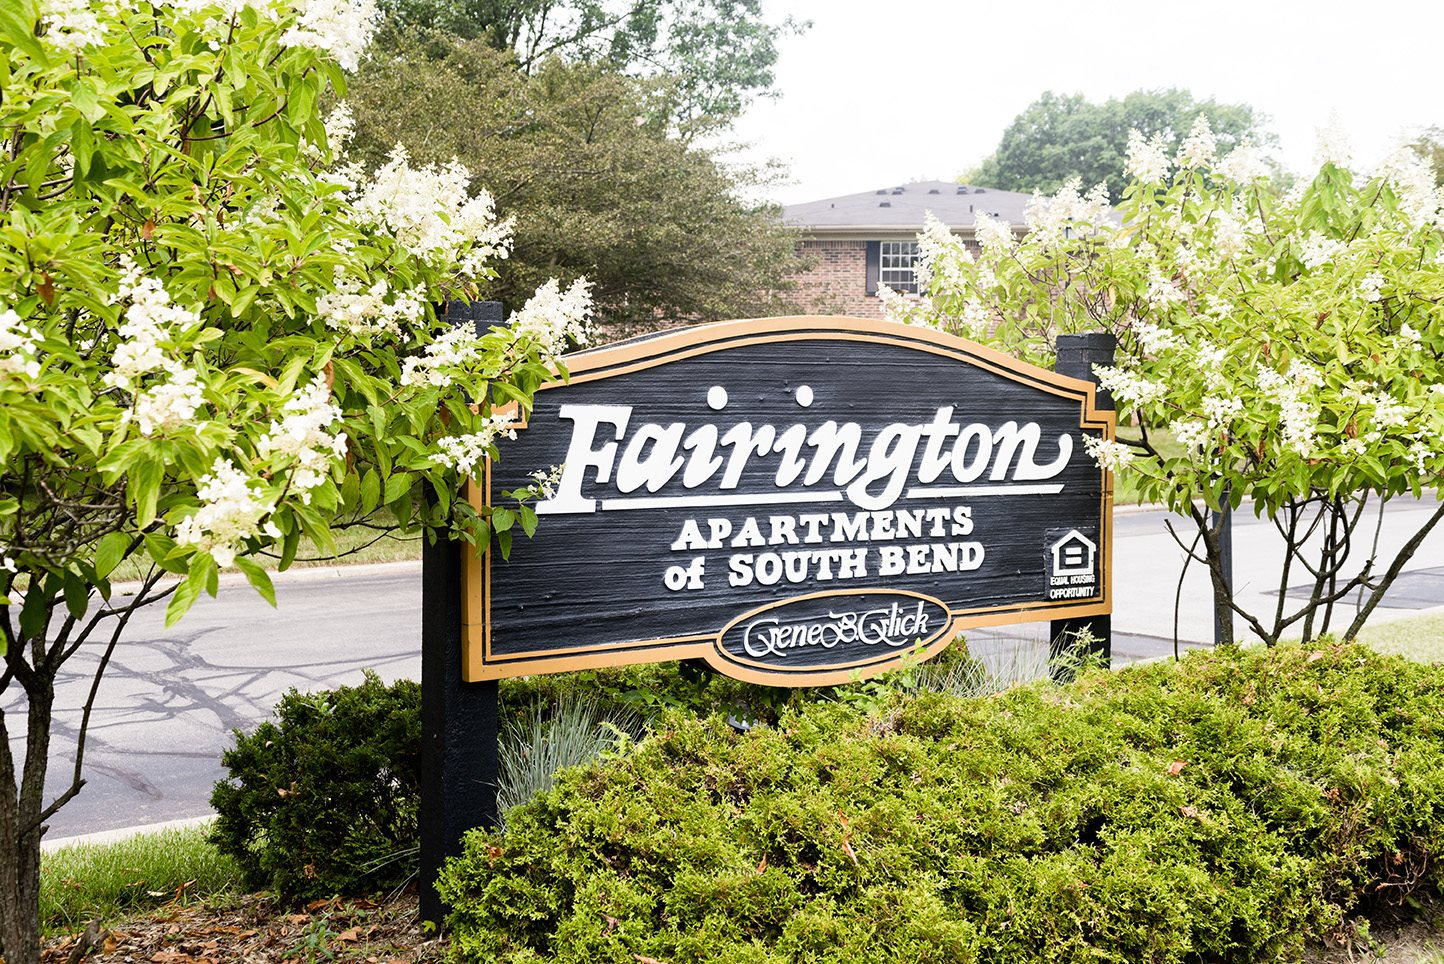 Welcome Home to Fairington Apartments of South Bend!